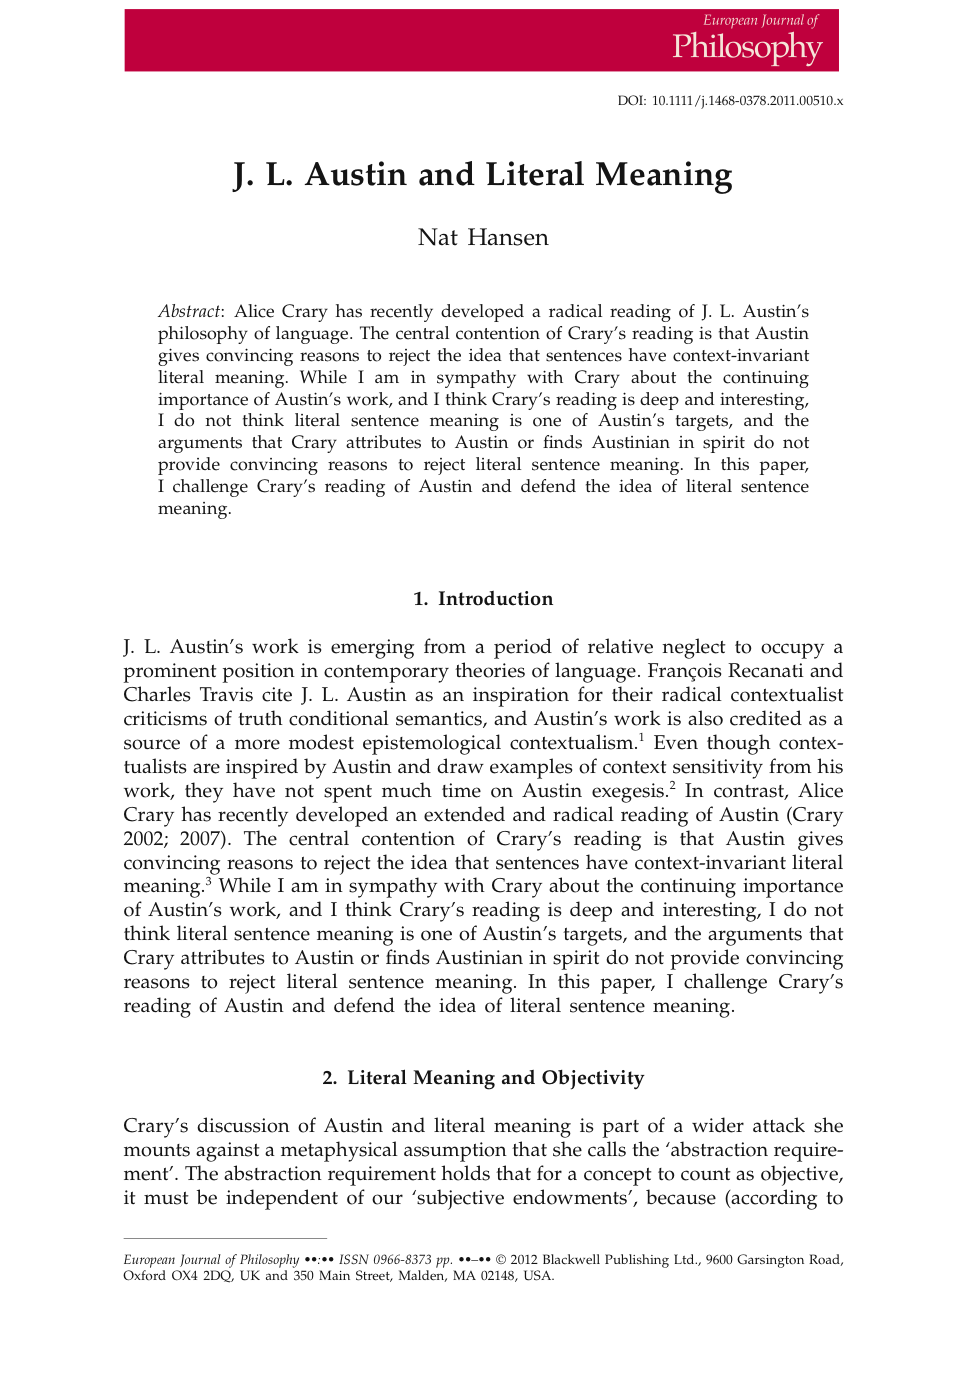 Dissertation abstract online word count